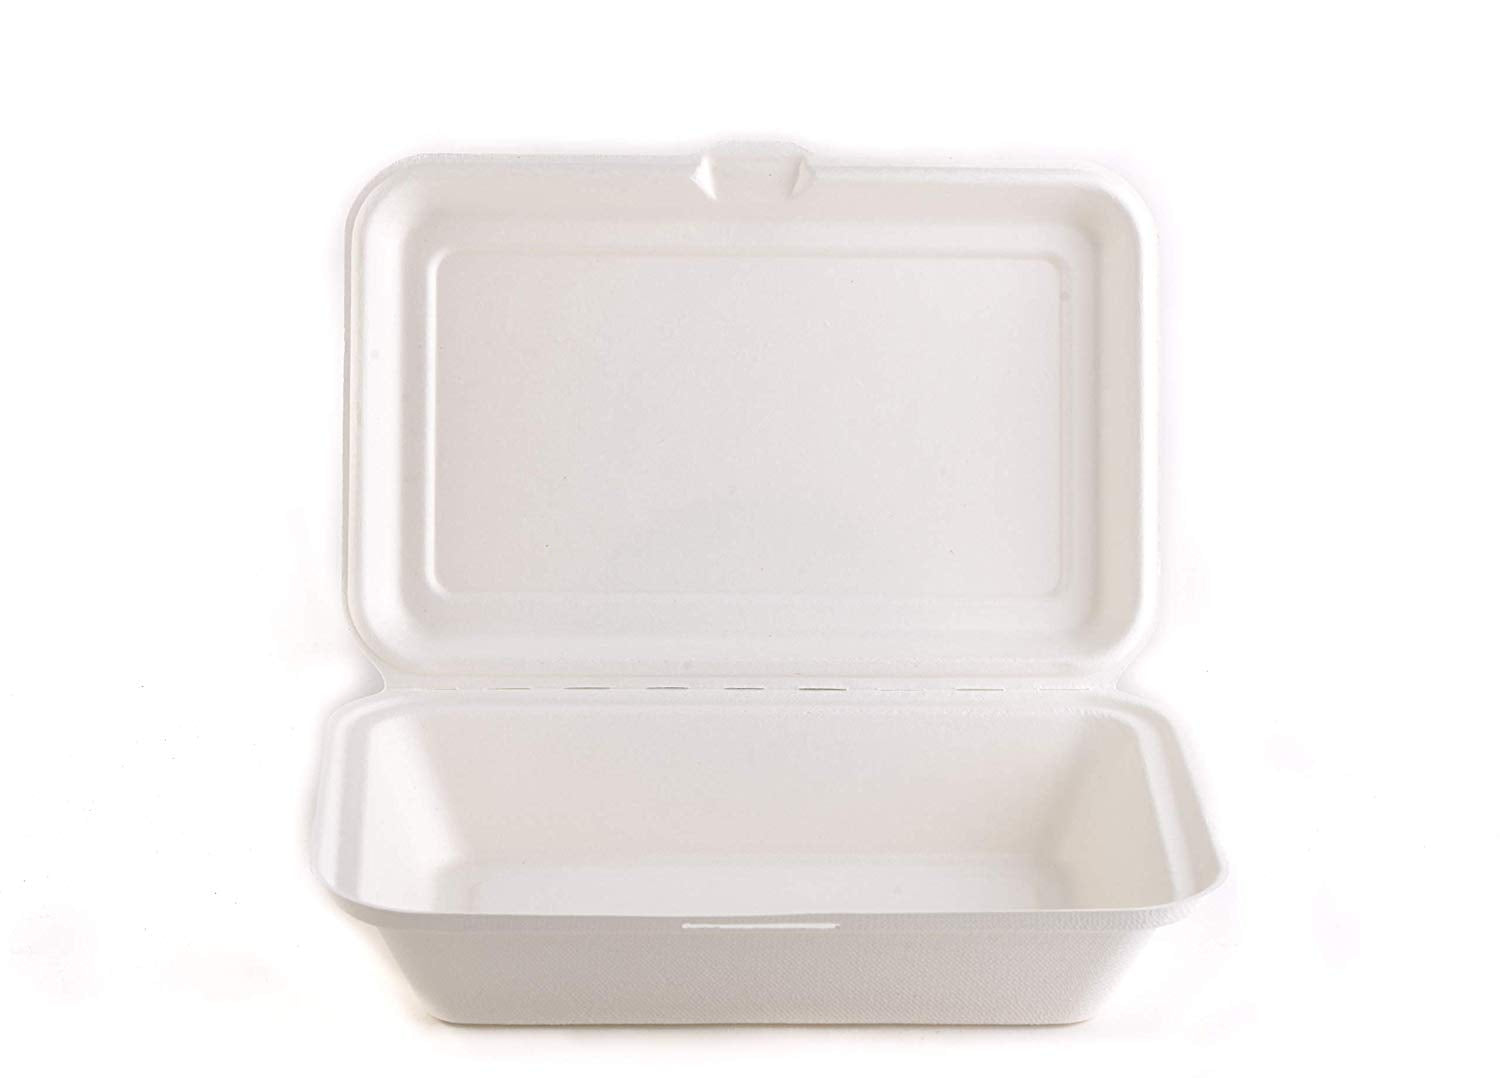 Biodegradable Take Out Food Containers with Clamshell Hinged Lid